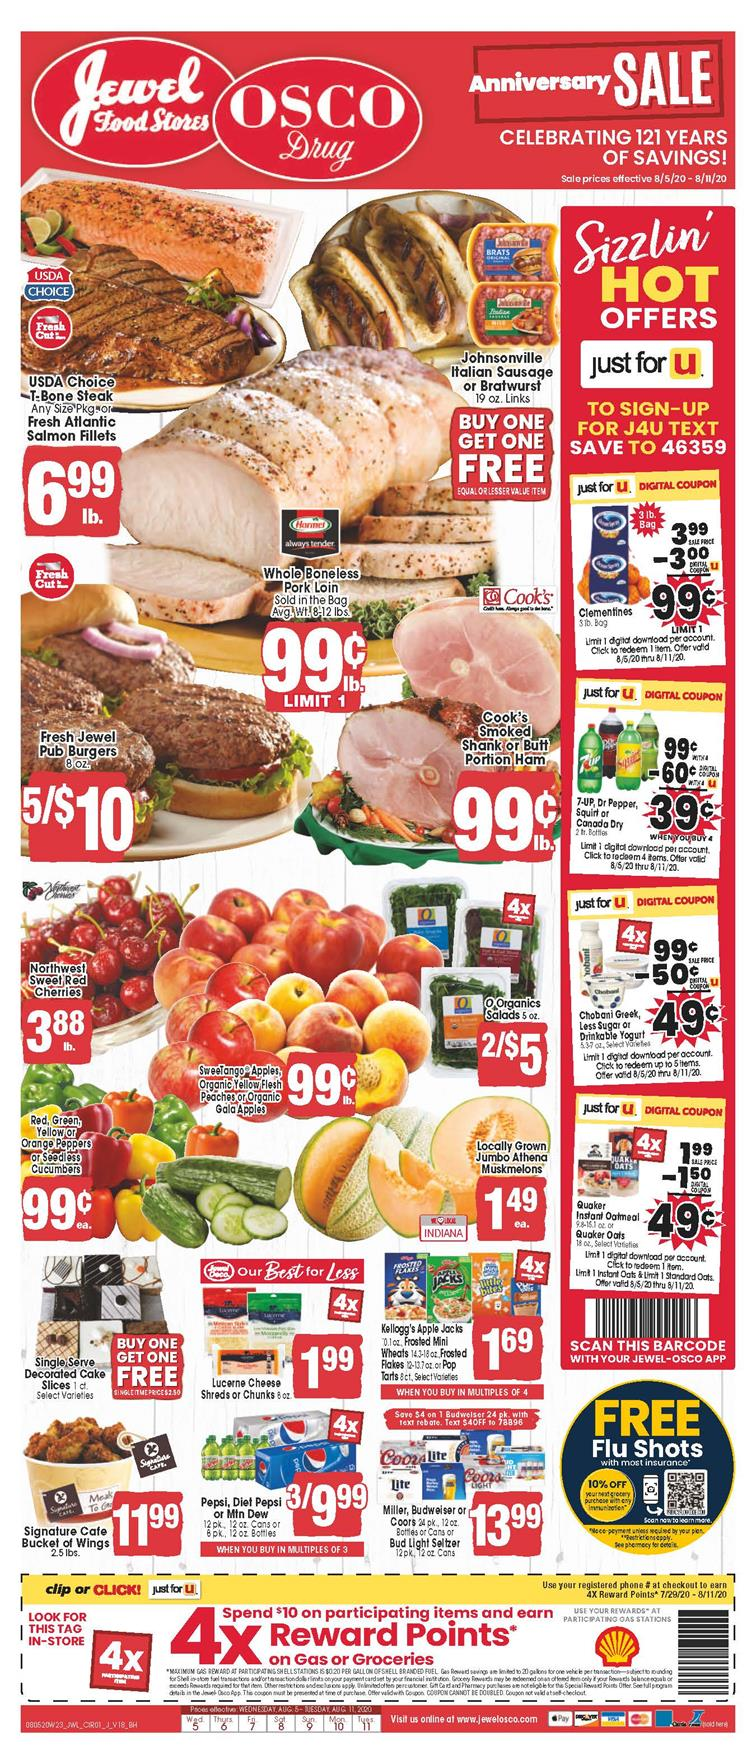 Jewel-Osco August Weekly Ad valid from Aug 5 – 11, 2020